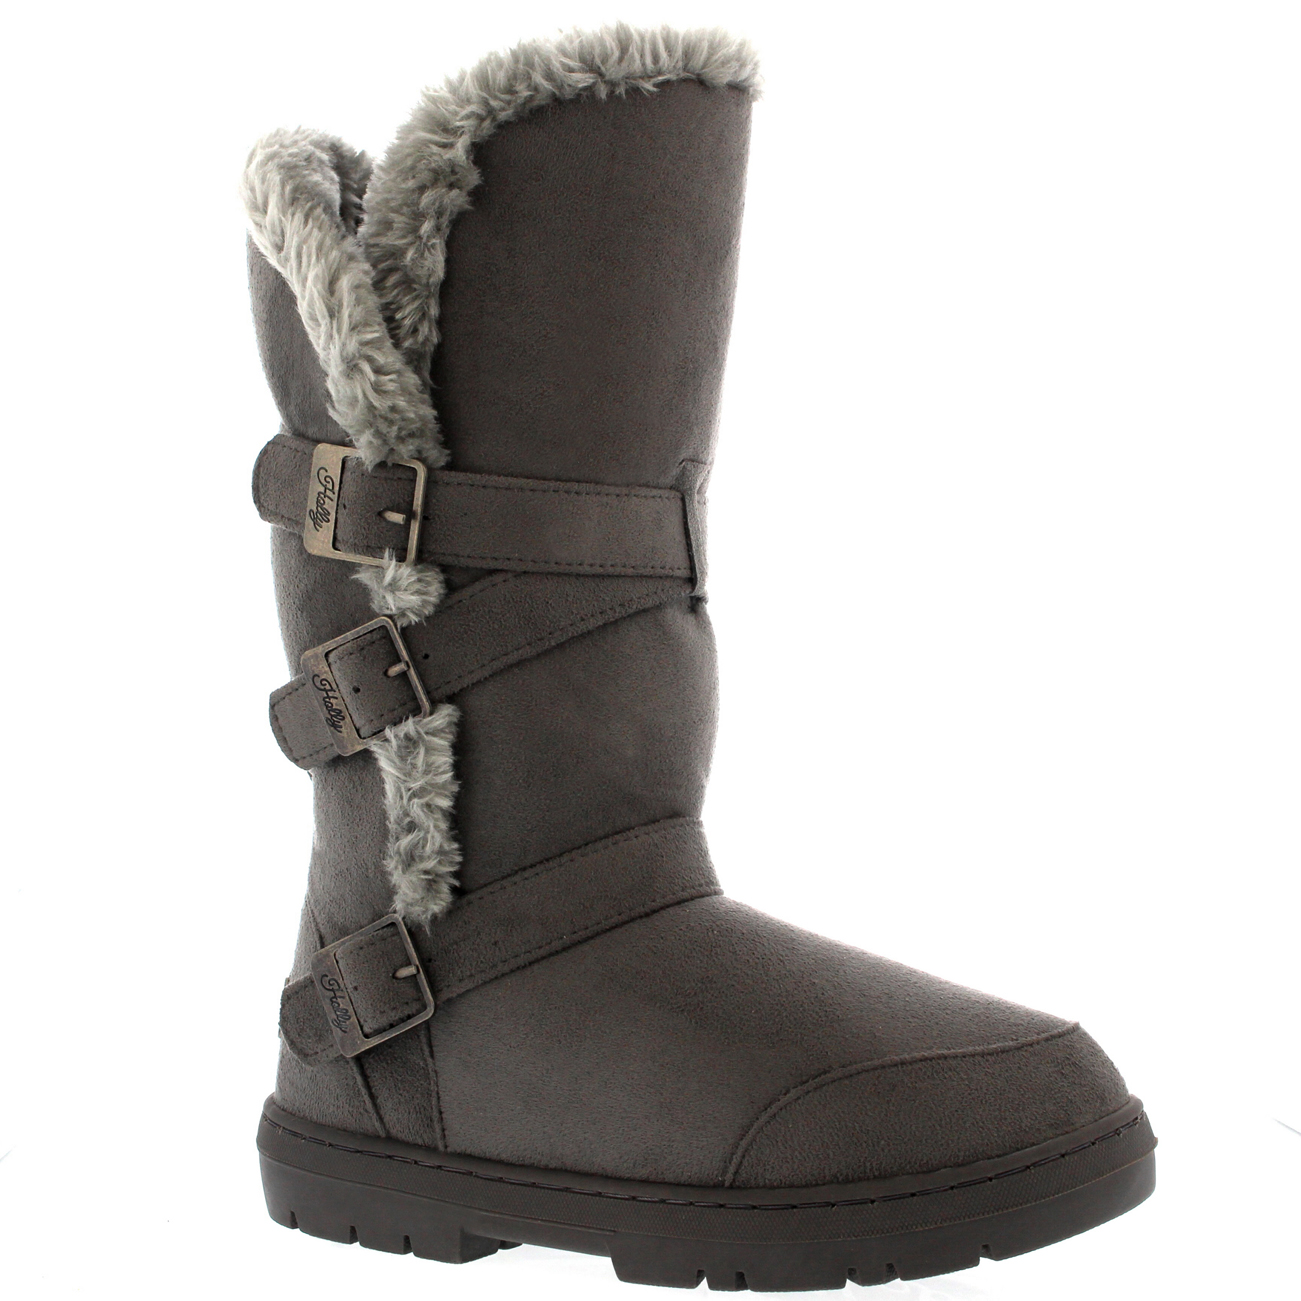 Lastest Details About WOMENS TALL FULLY FUR LINED WINTER SNOW SHOE BOOTS 38